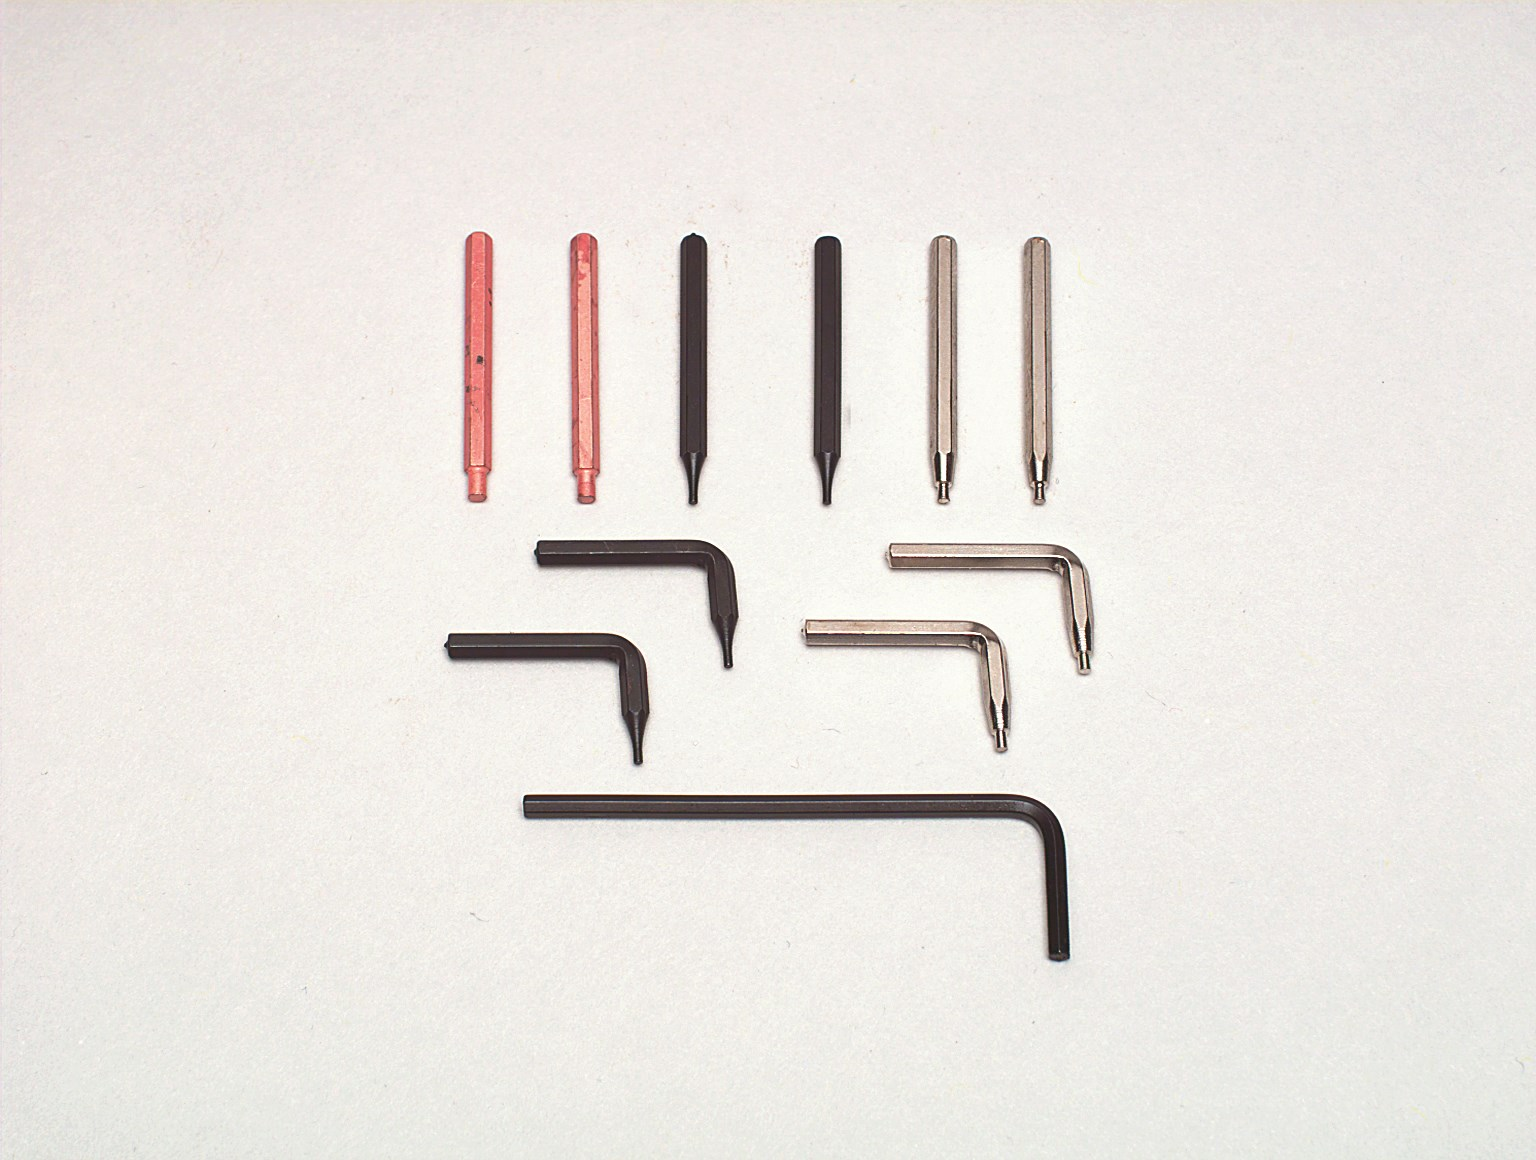 Wright Tool 9H1221RK Replacement tip kit for 9H1221S